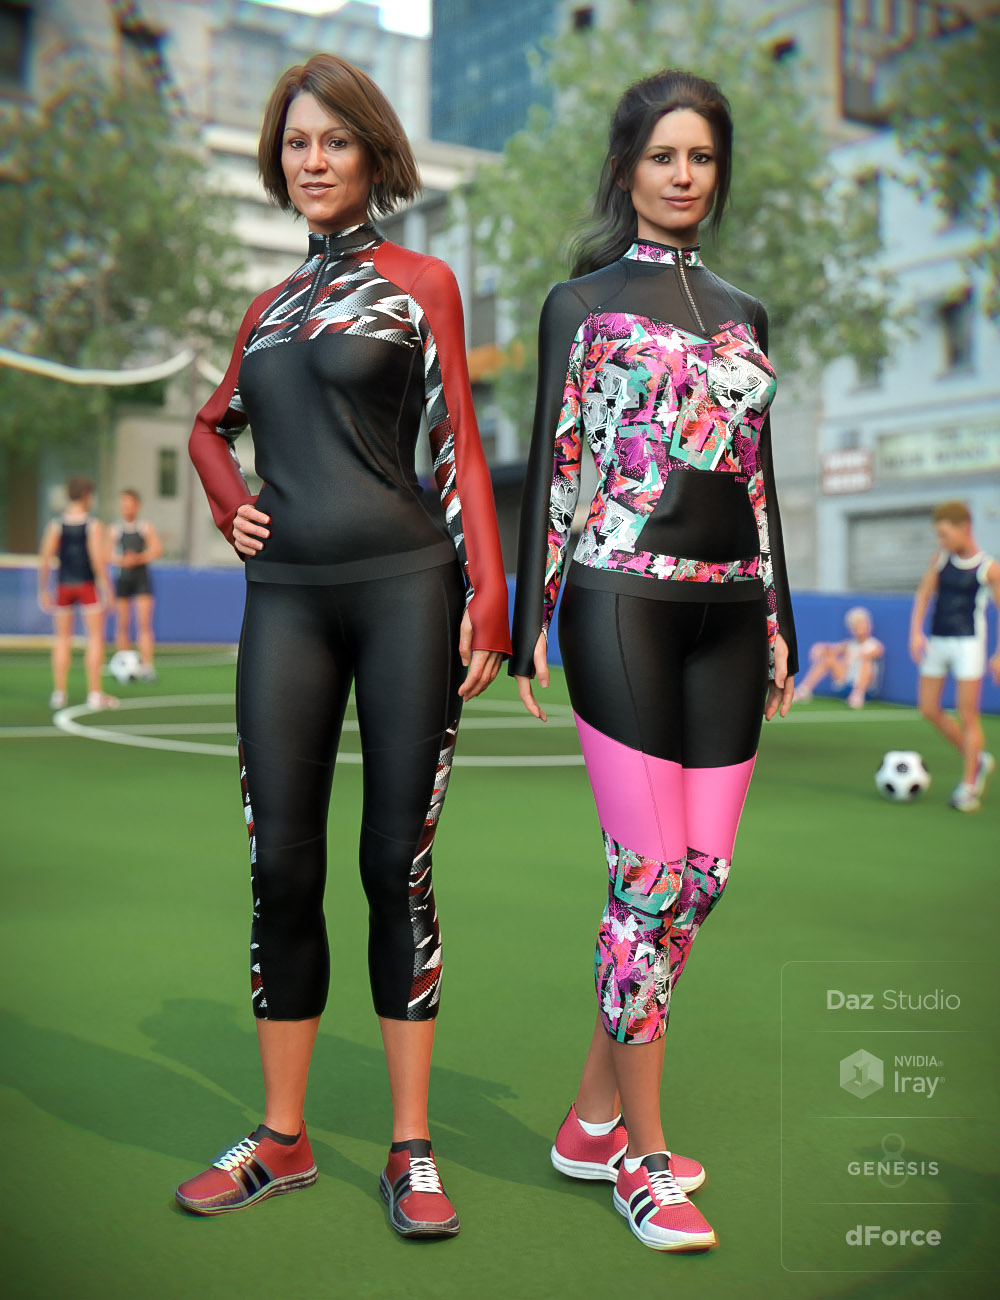 dForce Soccer Mom Outfit Textures by: Moonscape GraphicsSade, 3D Models by Daz 3D